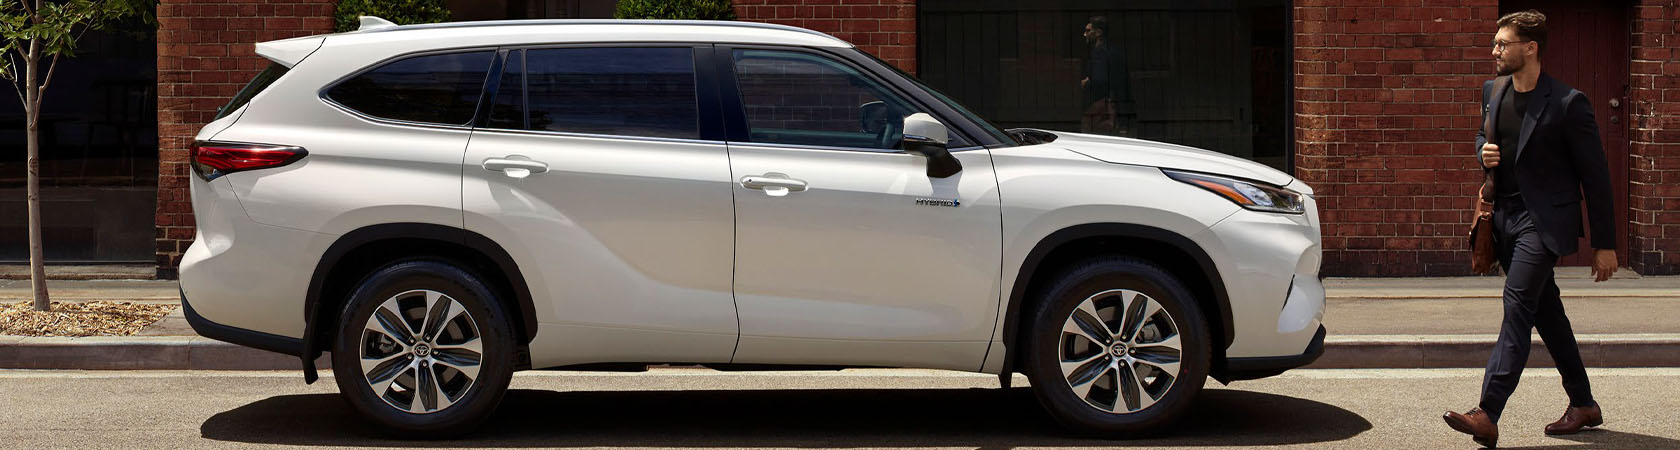 Jacob Toyota Kluger